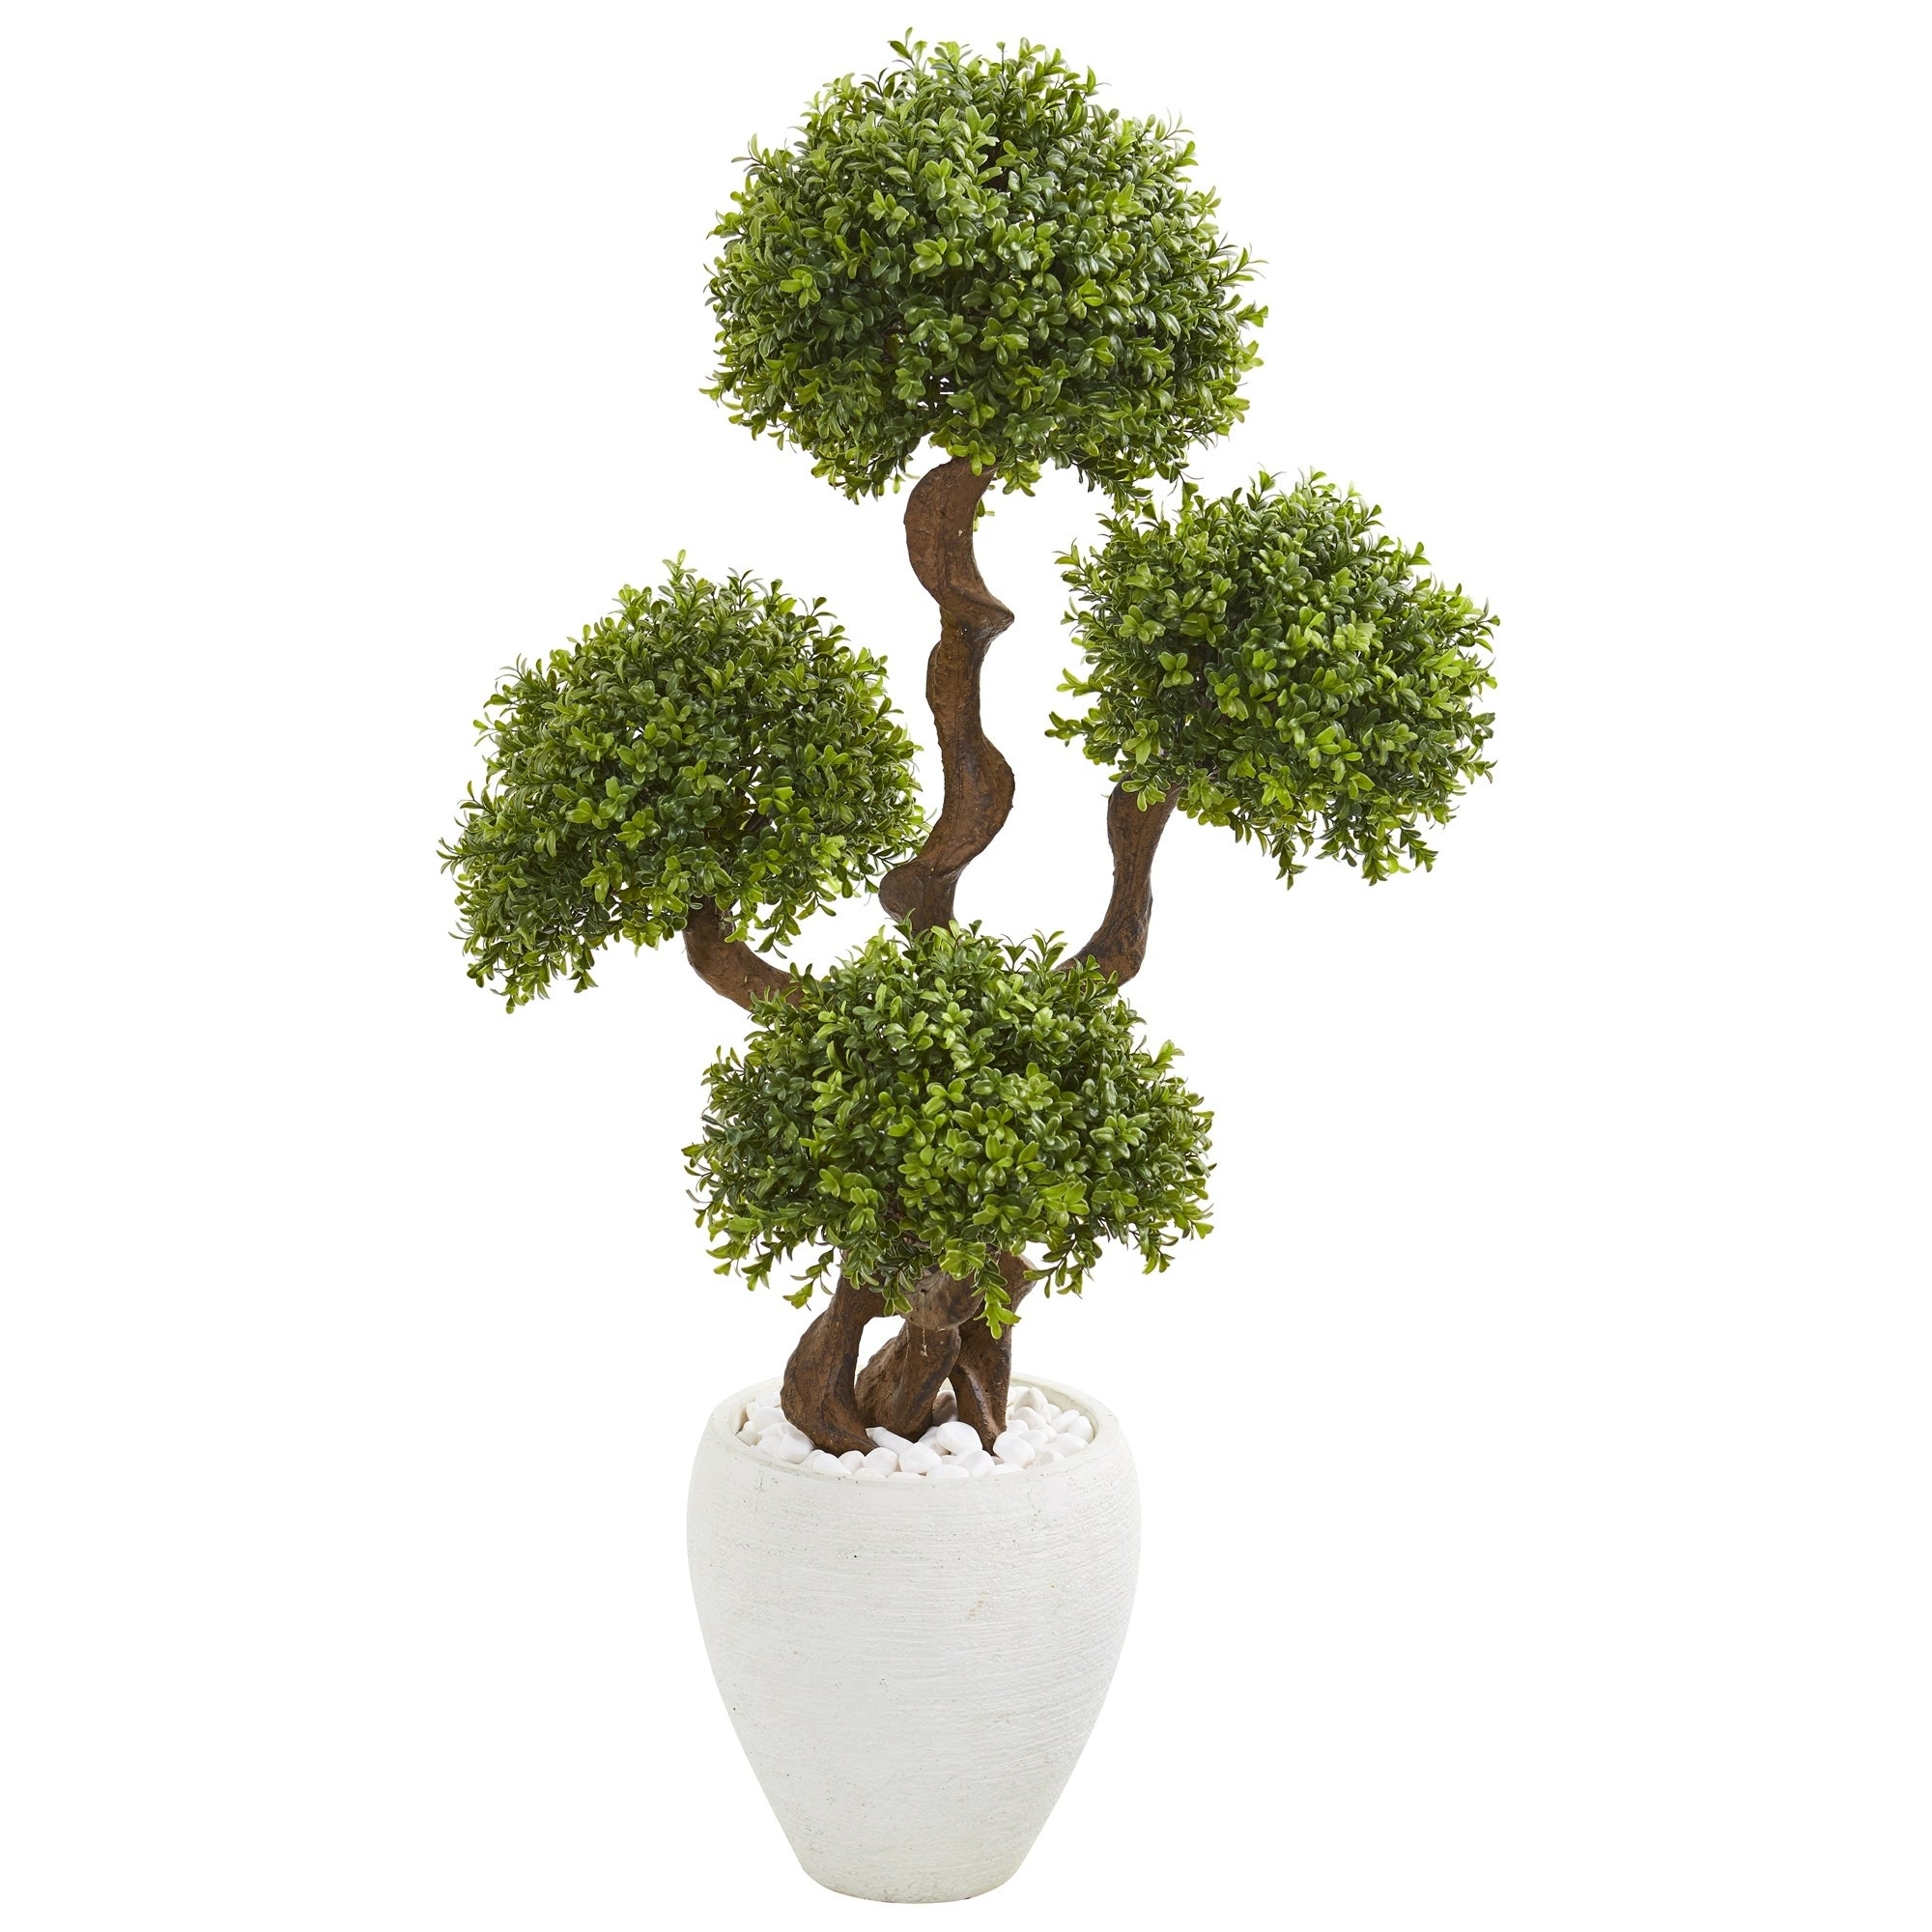 4 Four Ball Boxwood Artificial Topiary Tree in White Planter